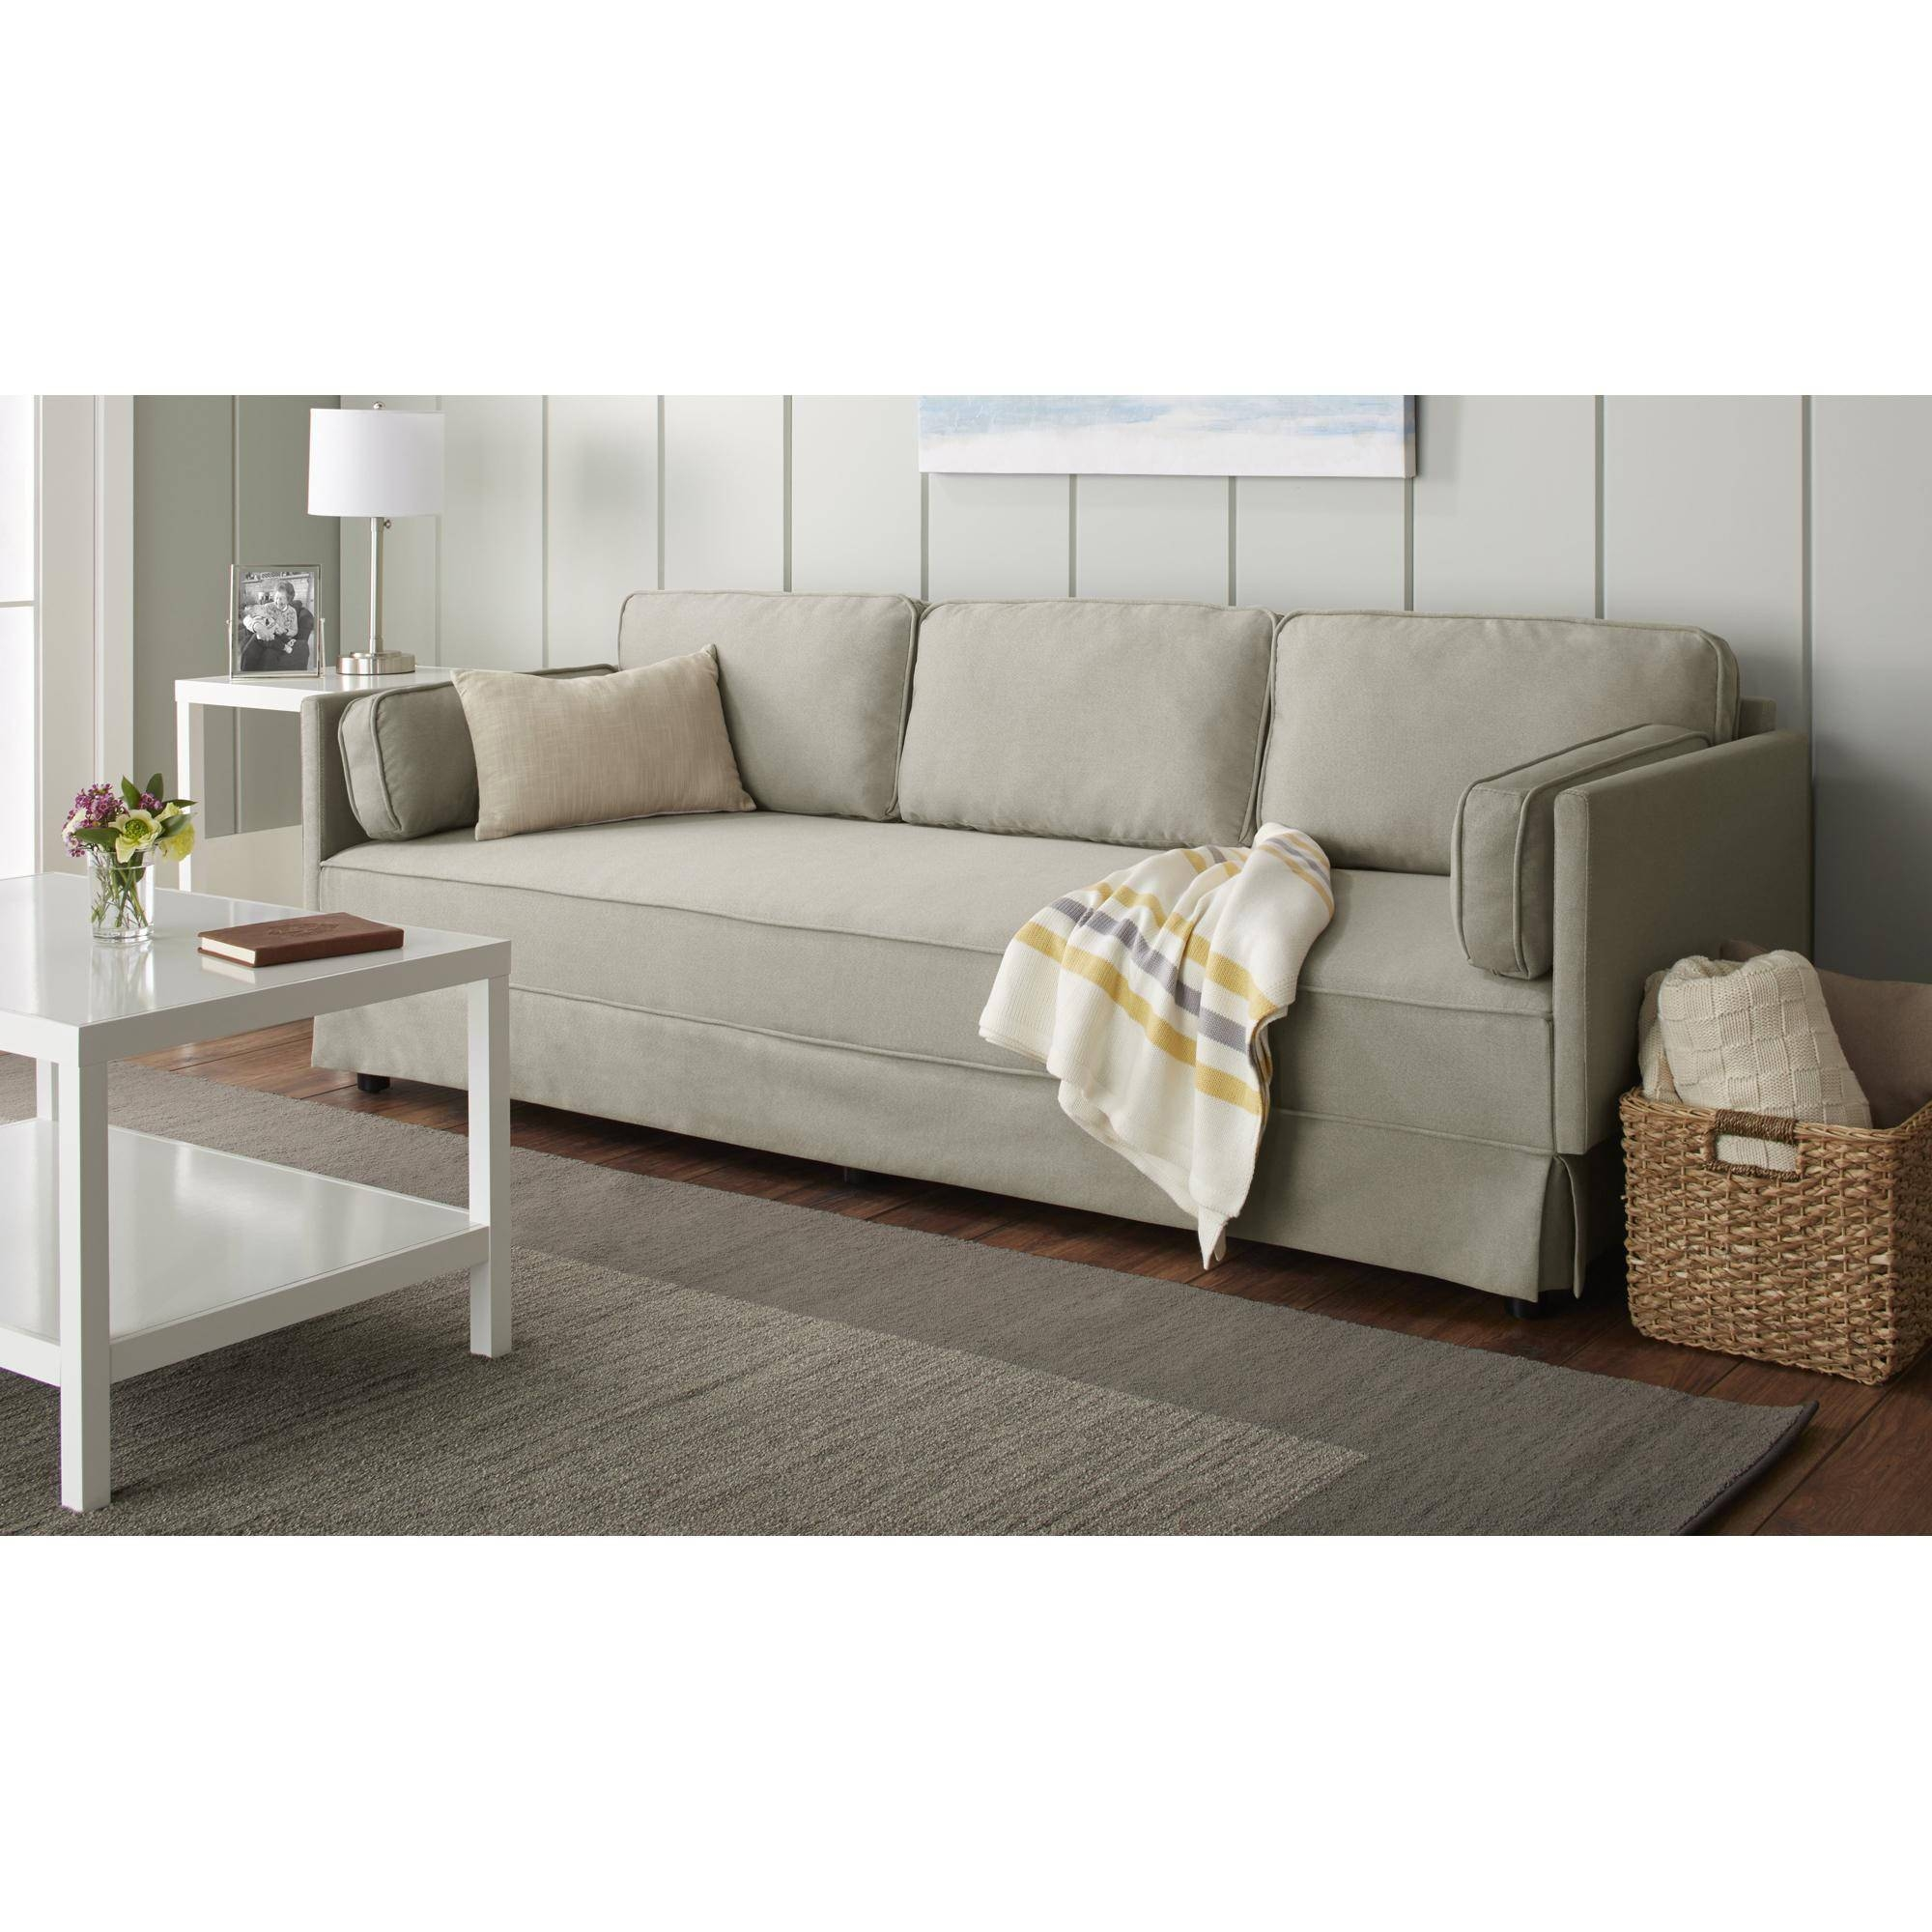 10 Spring Street Durant Sofa, Multiple Colors - Walmart pertaining to Wallmart Sofa (Image 3 of 25)